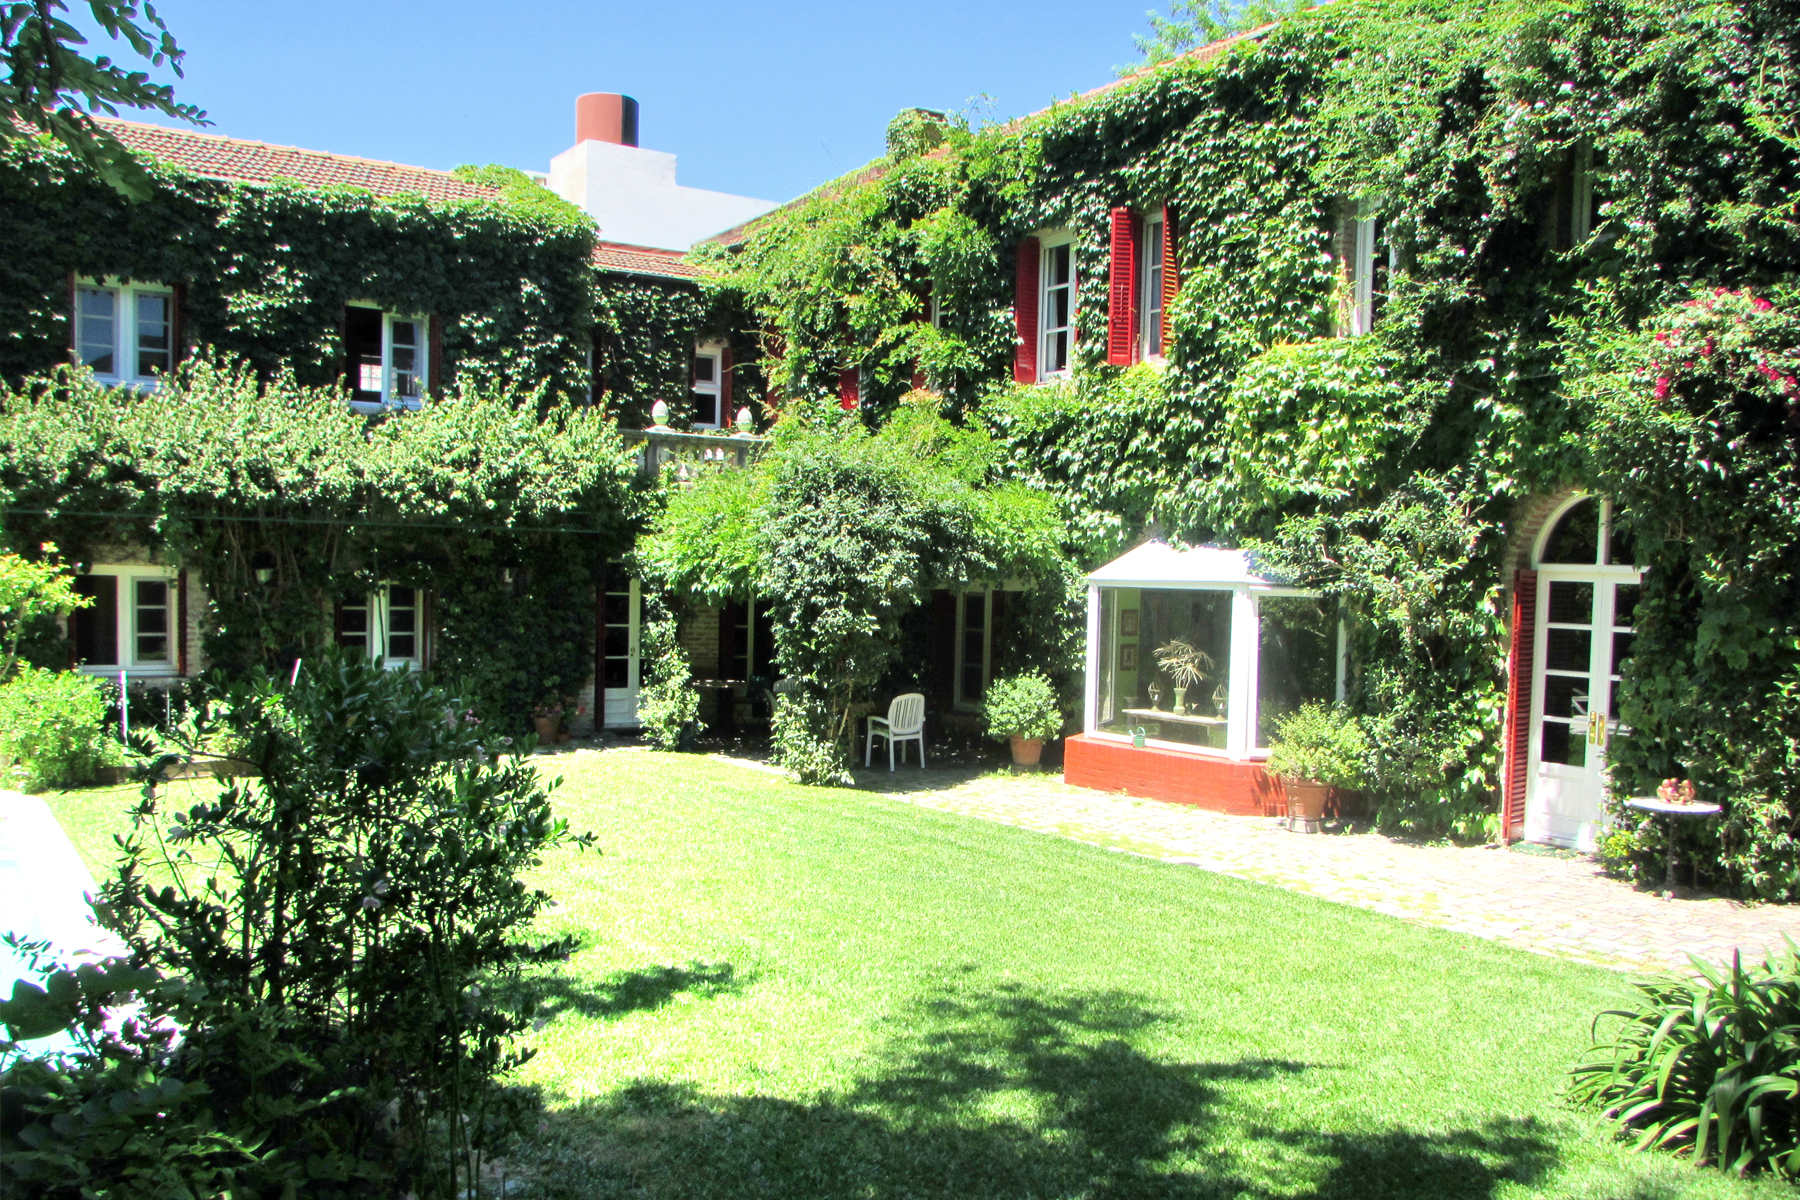 Single Family Home for Sale at House in Belgrano - Dragones 1900 Belgrano, Buenos Aires, Buenos Aires Argentina